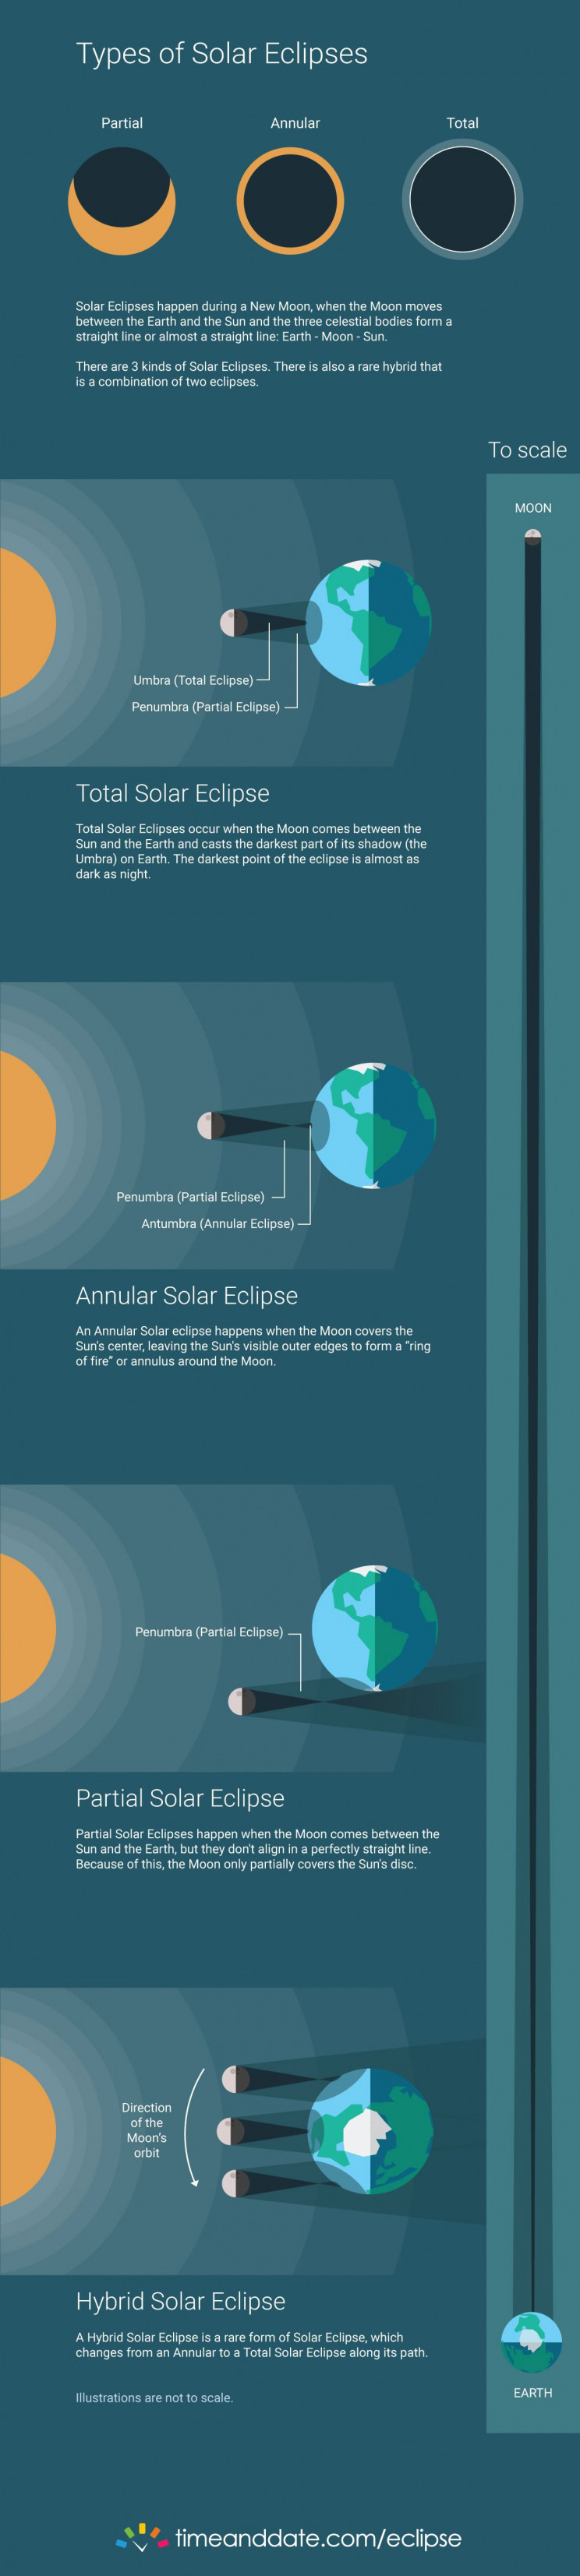 solar eclipses infographic